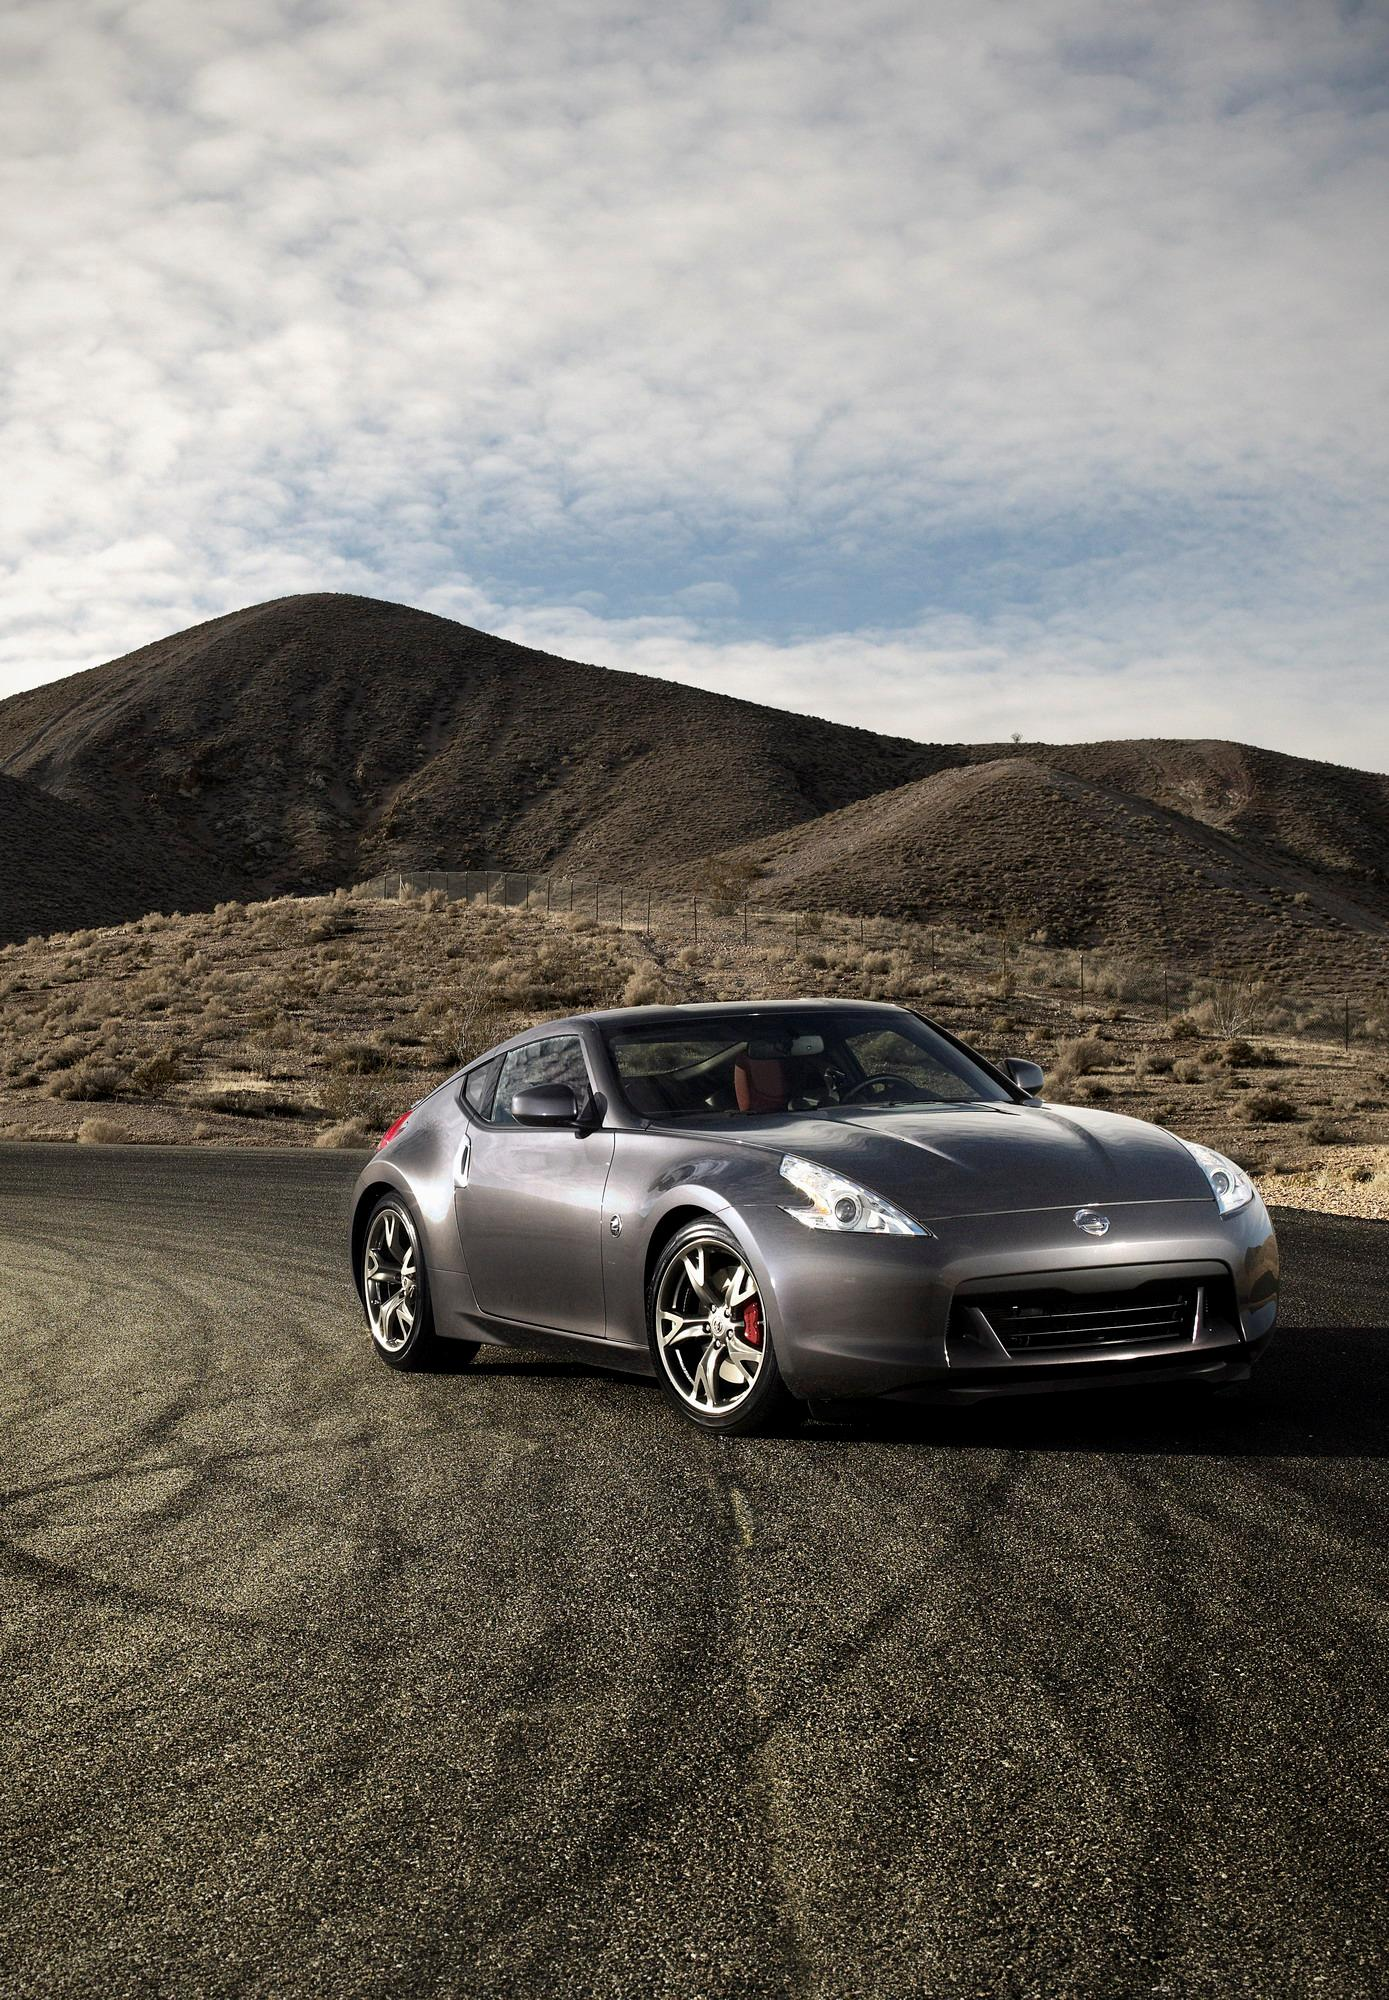 2010 Nissan 370Z 40th Anniversary Edition | Top Speed